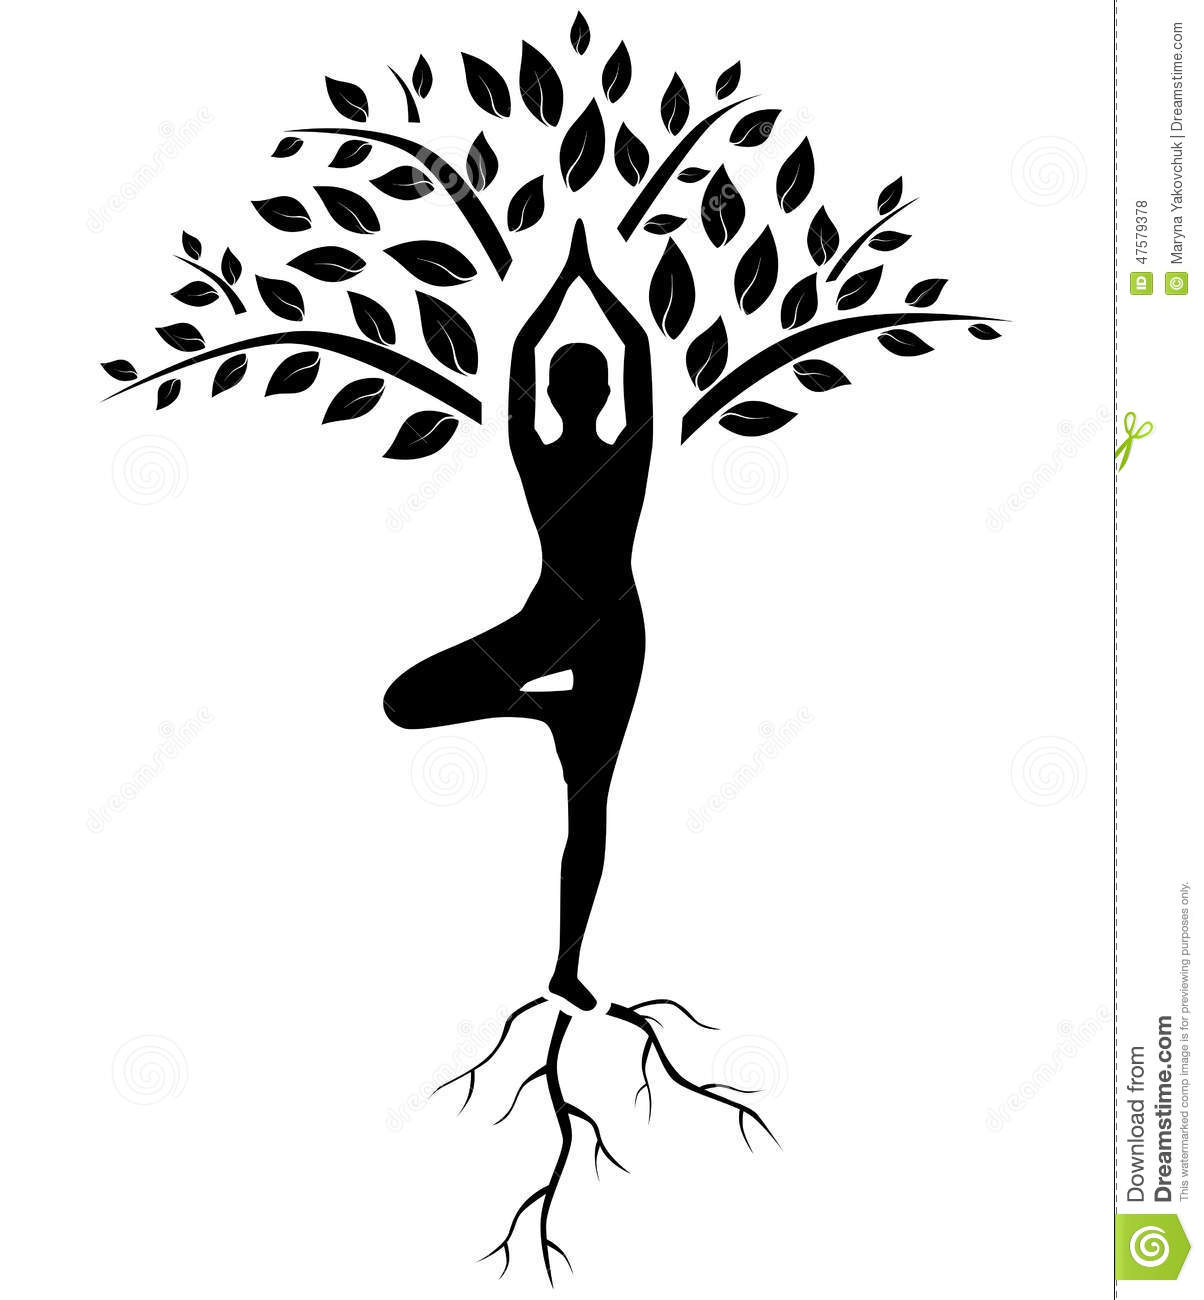 Download Yoga Tree Pose Silhouette Stock Vector Illustration Of Growth